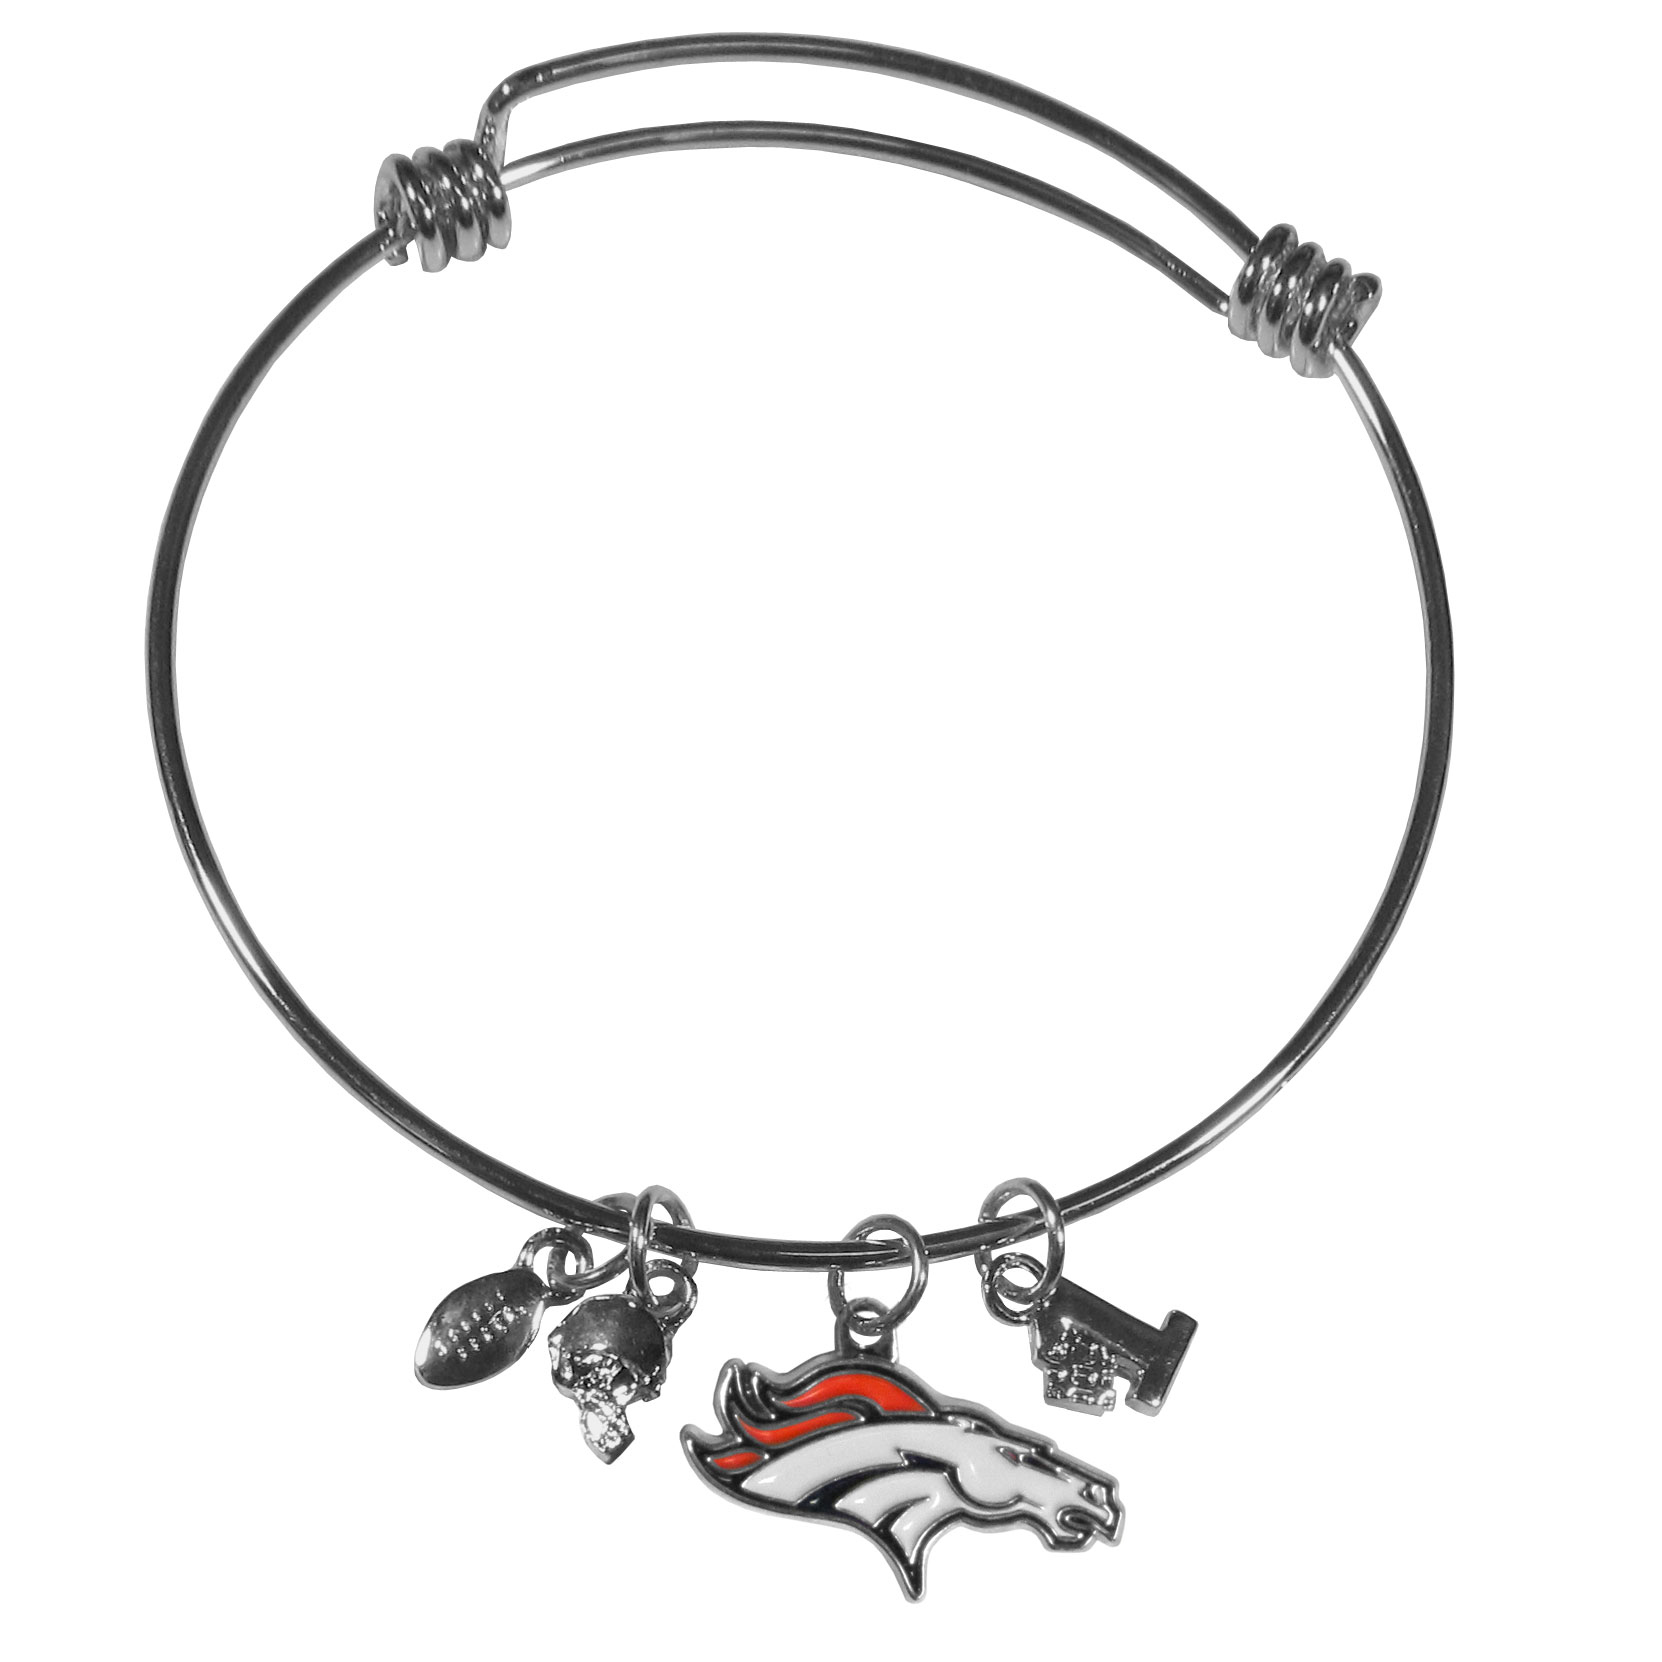 Denver Broncos Charm Bangle Bracelet - Adjustable wire bracelets are all the rage and this Denver Broncos bracelet matches the popular trend with your beloved team. The bracelet features 4 charms in total, each feature exceptional detail and the team charm has enameled team colors.